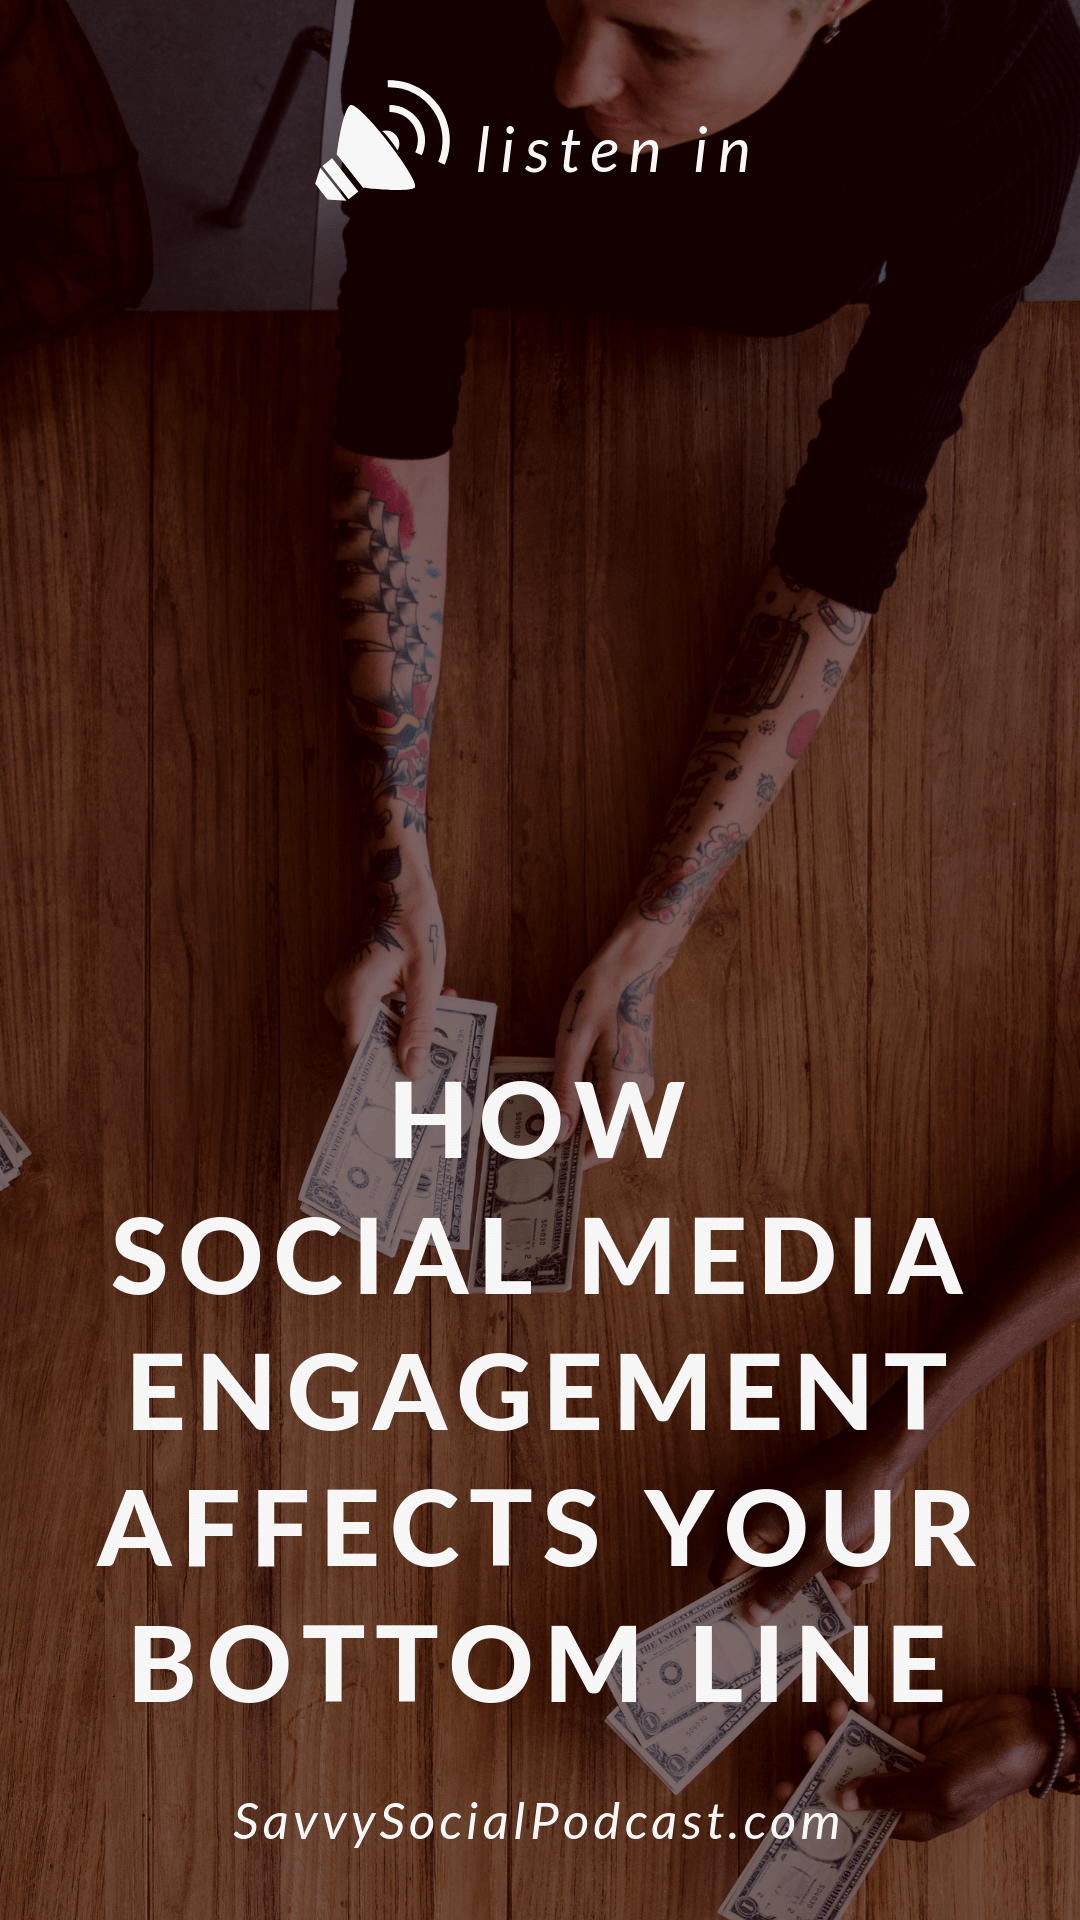 Did you know that the right kind of #socialmedia engagement could effect your business in massive ways? Listen in to this podcast episode to find out how it effects your bottom line and ways you can increase your current engagement.